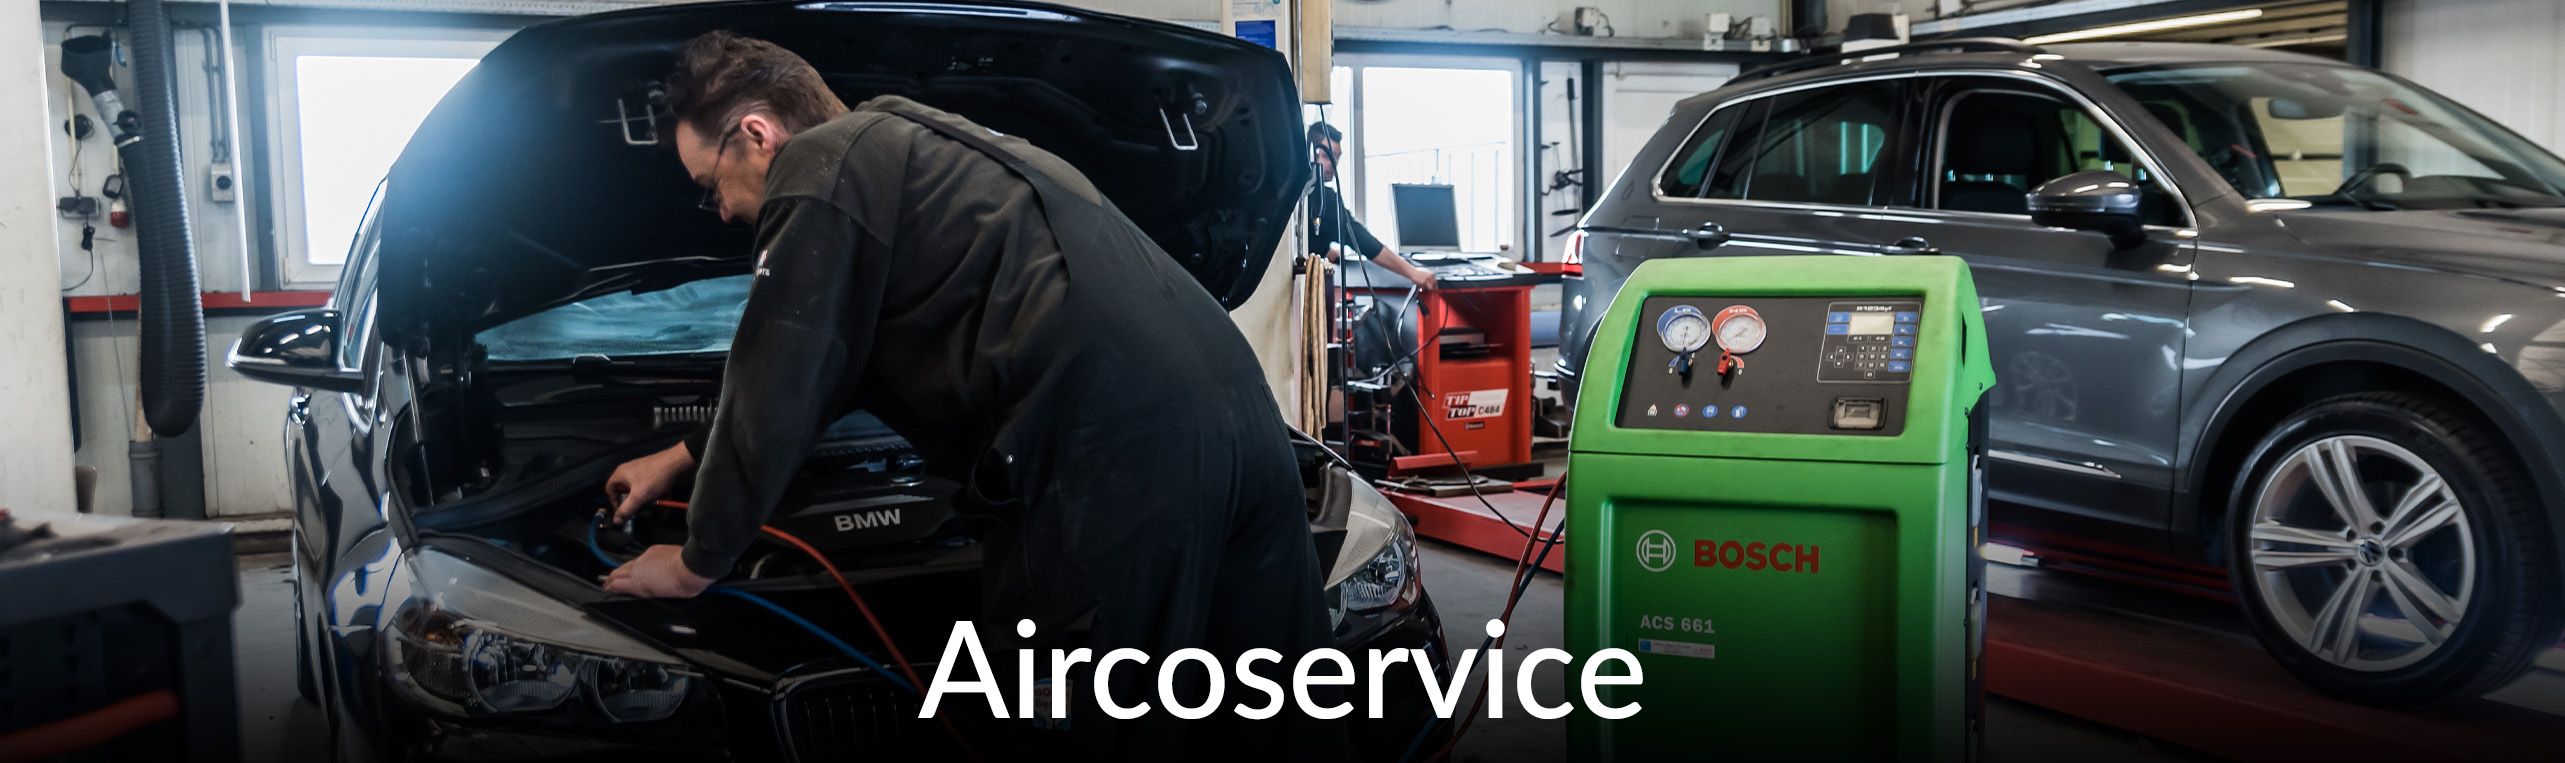 Aircoservice